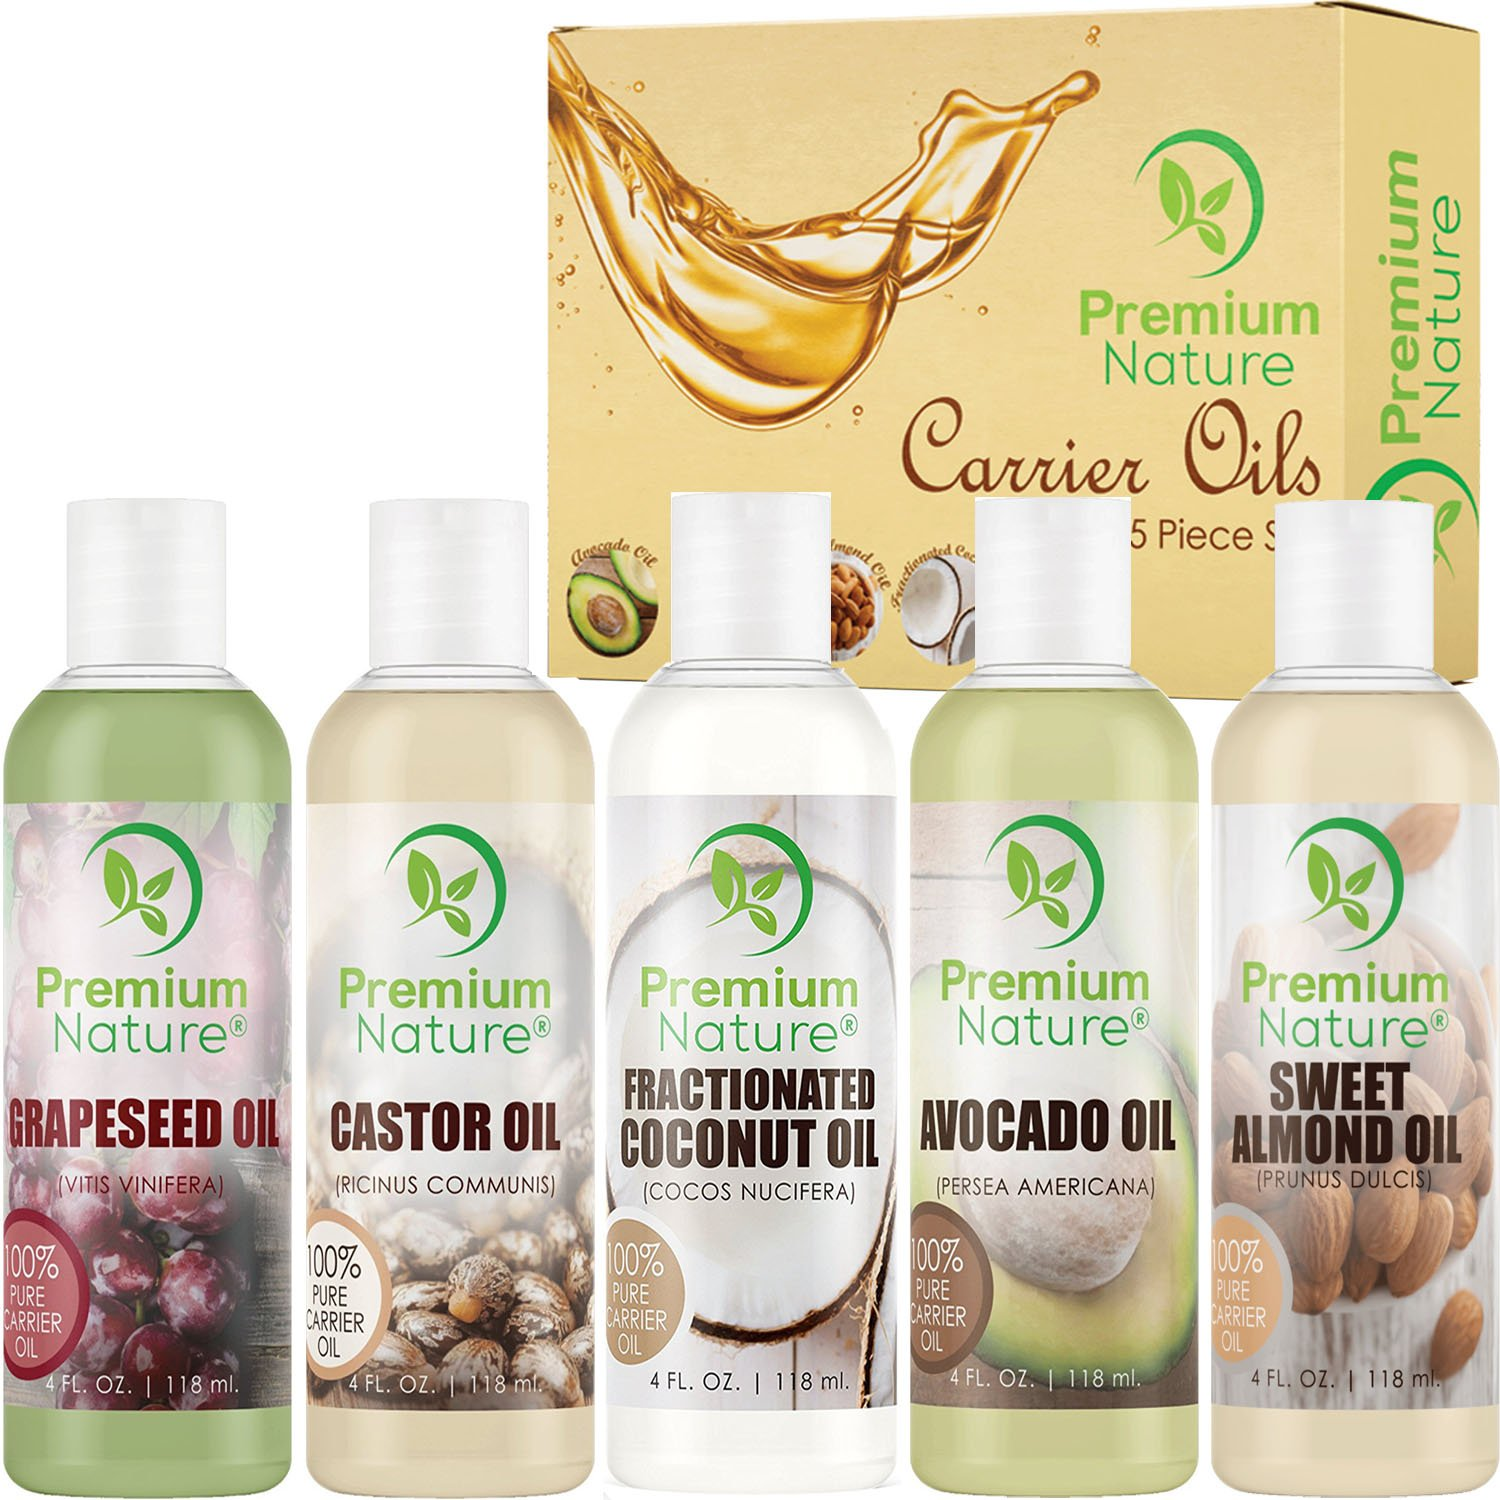 Carrier Oil Gift Set Coconut Oil - Castor Oil - Grapeseed Oil - Avocado Oil & Sweet Almond Oil - Best Massage Oil All Natural - 118 ml Each 5 Piece Variety Pack of Oils Premium Nature Carrier Oils Variety 5 Pack